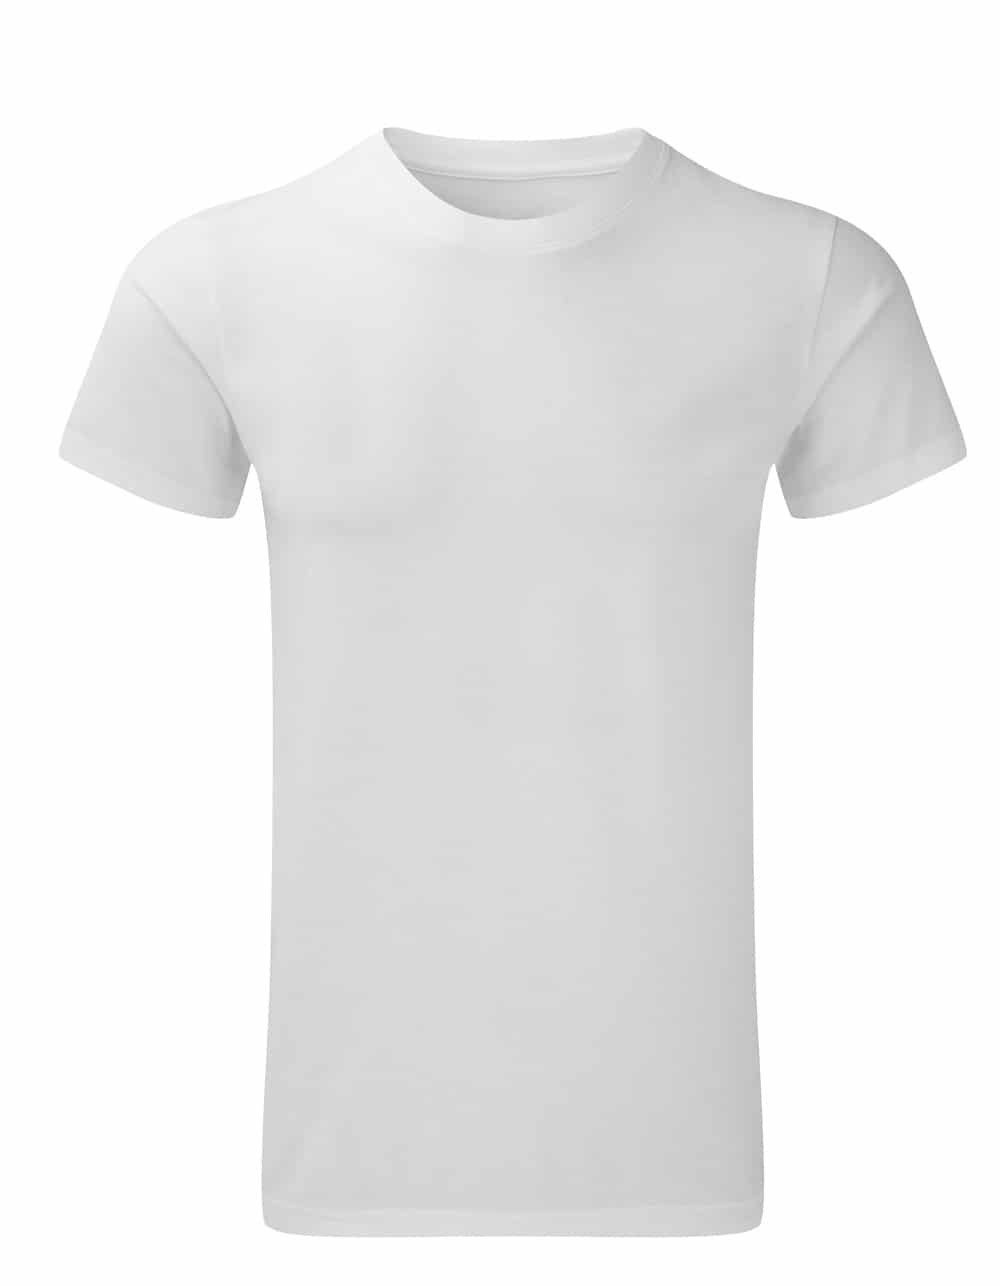 T-ACTIVE-H-B-S__IMG__HD__T-Shirt20Polyester20Homme20Taille20S__1__1.jpg